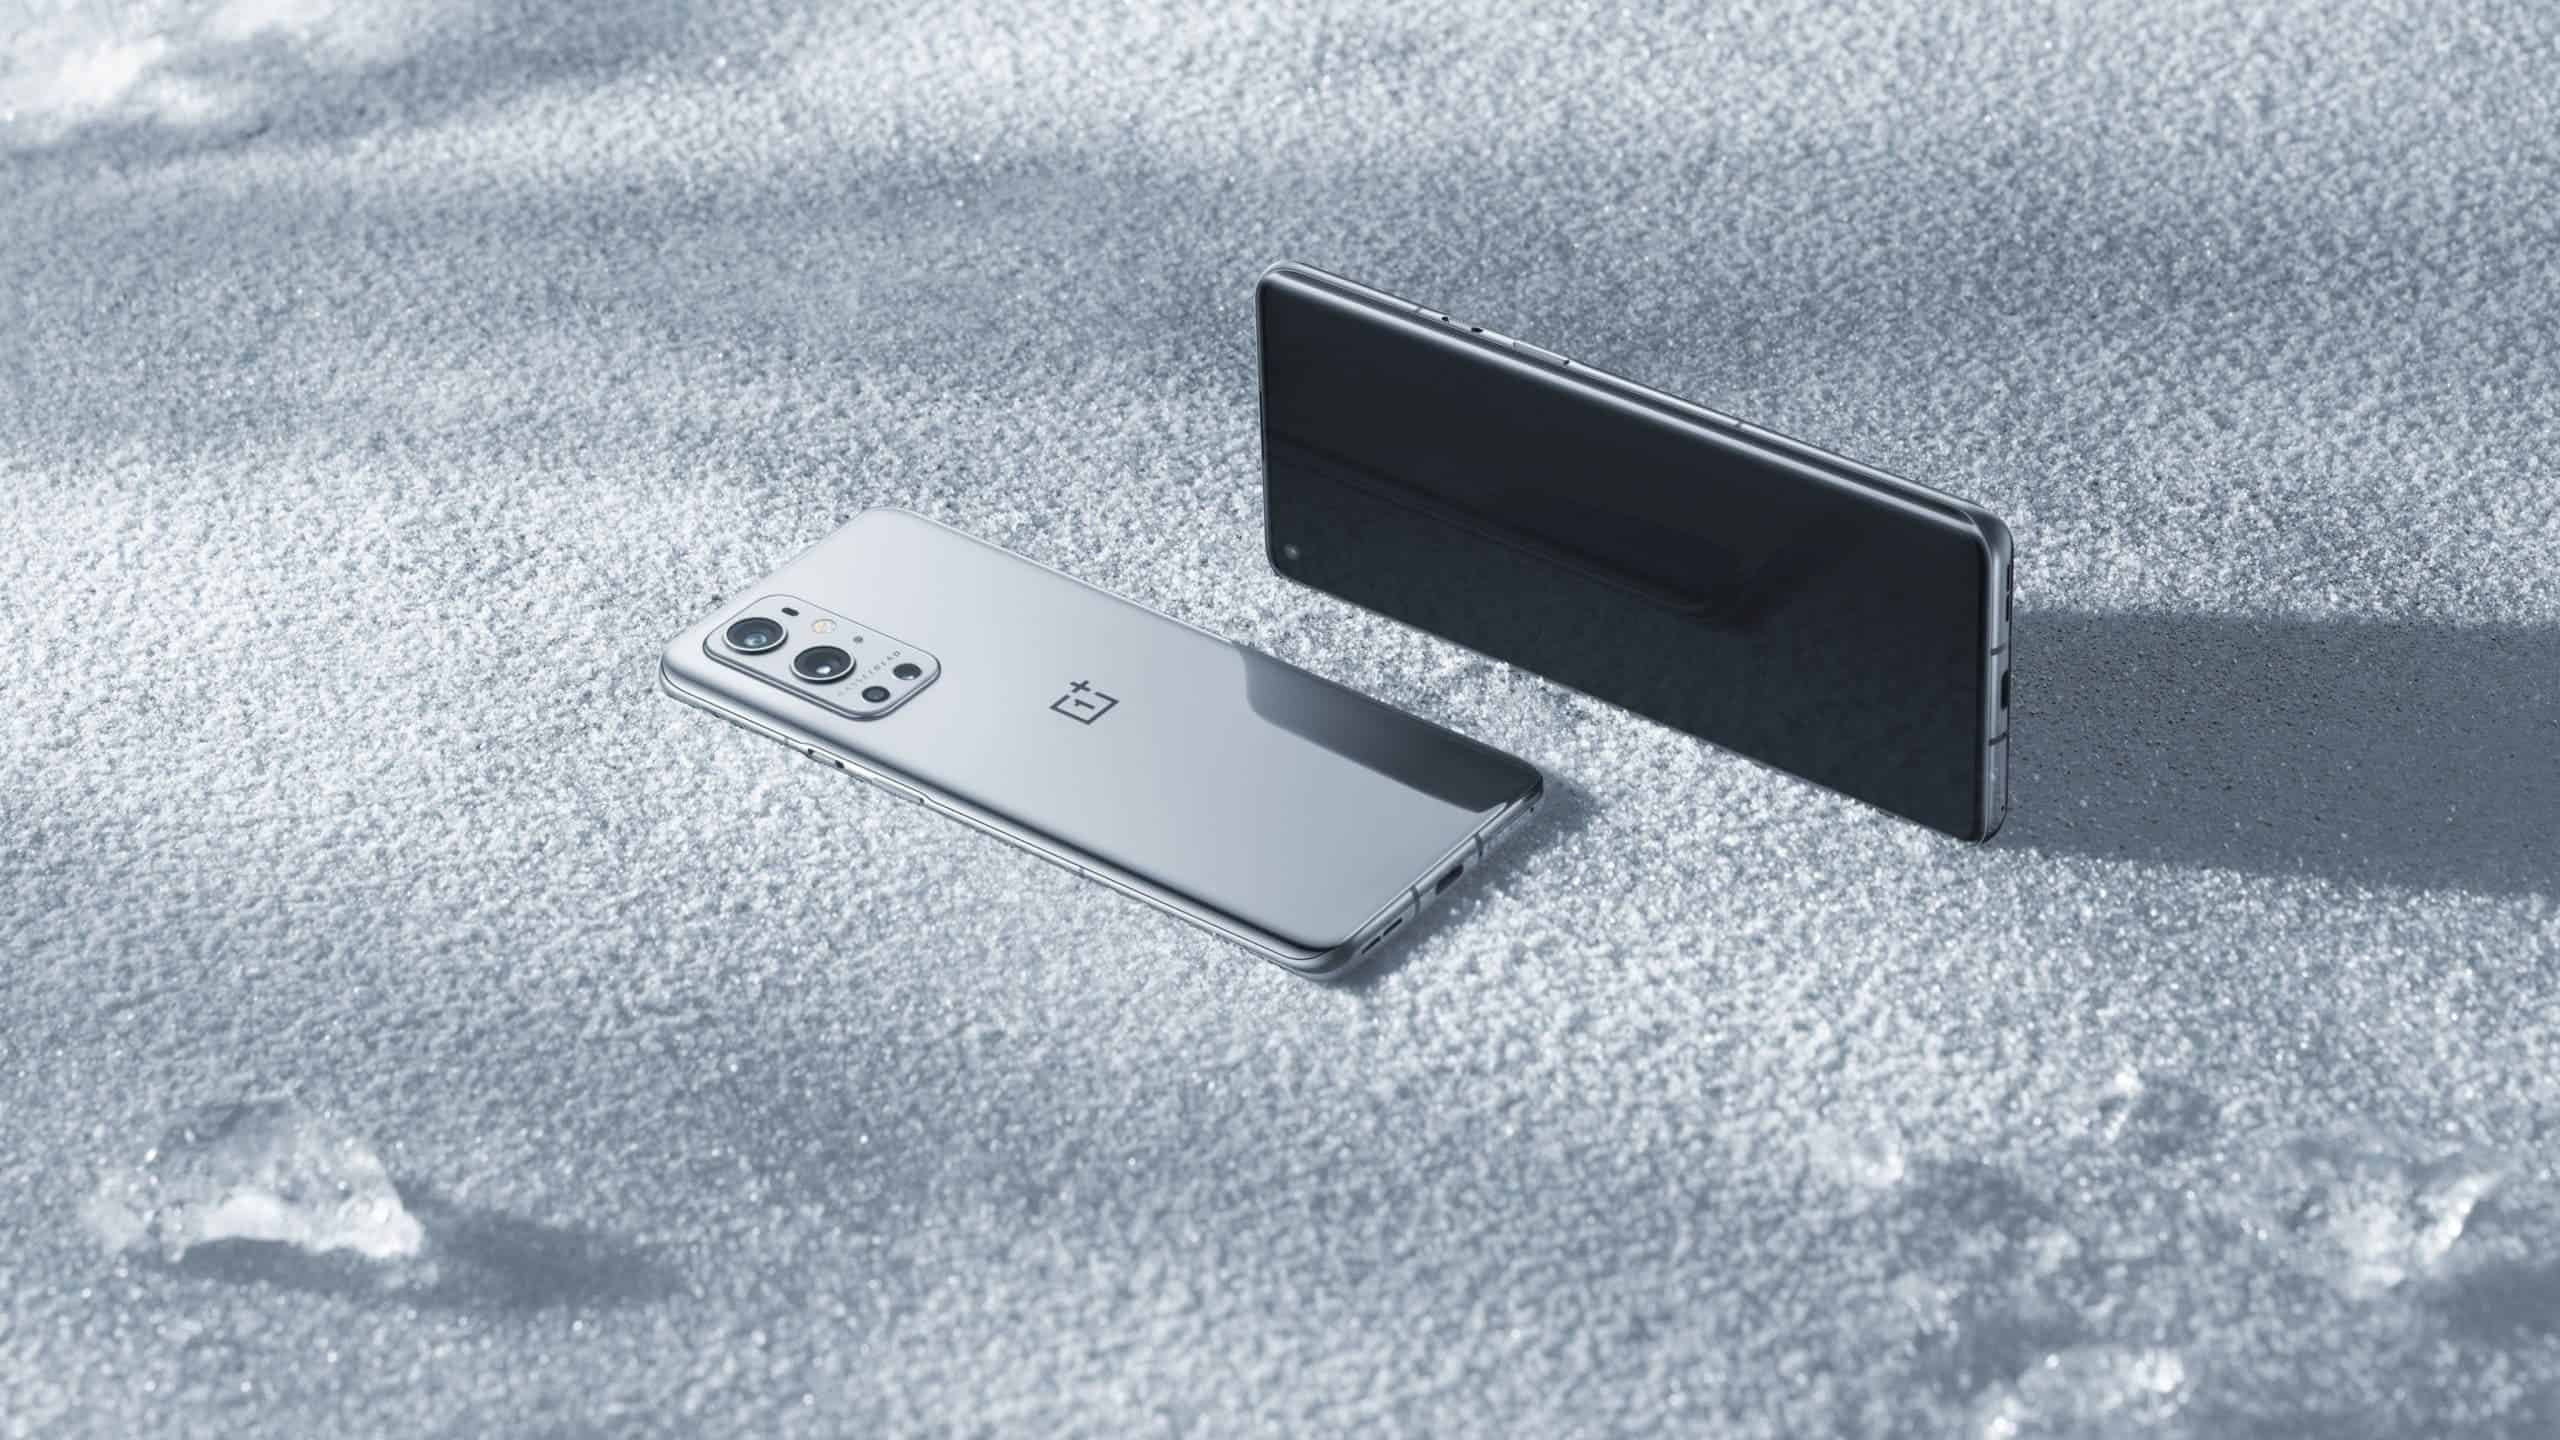 OnePlus 9 Pro fully charges in just 29 minutes - Gizchina.com